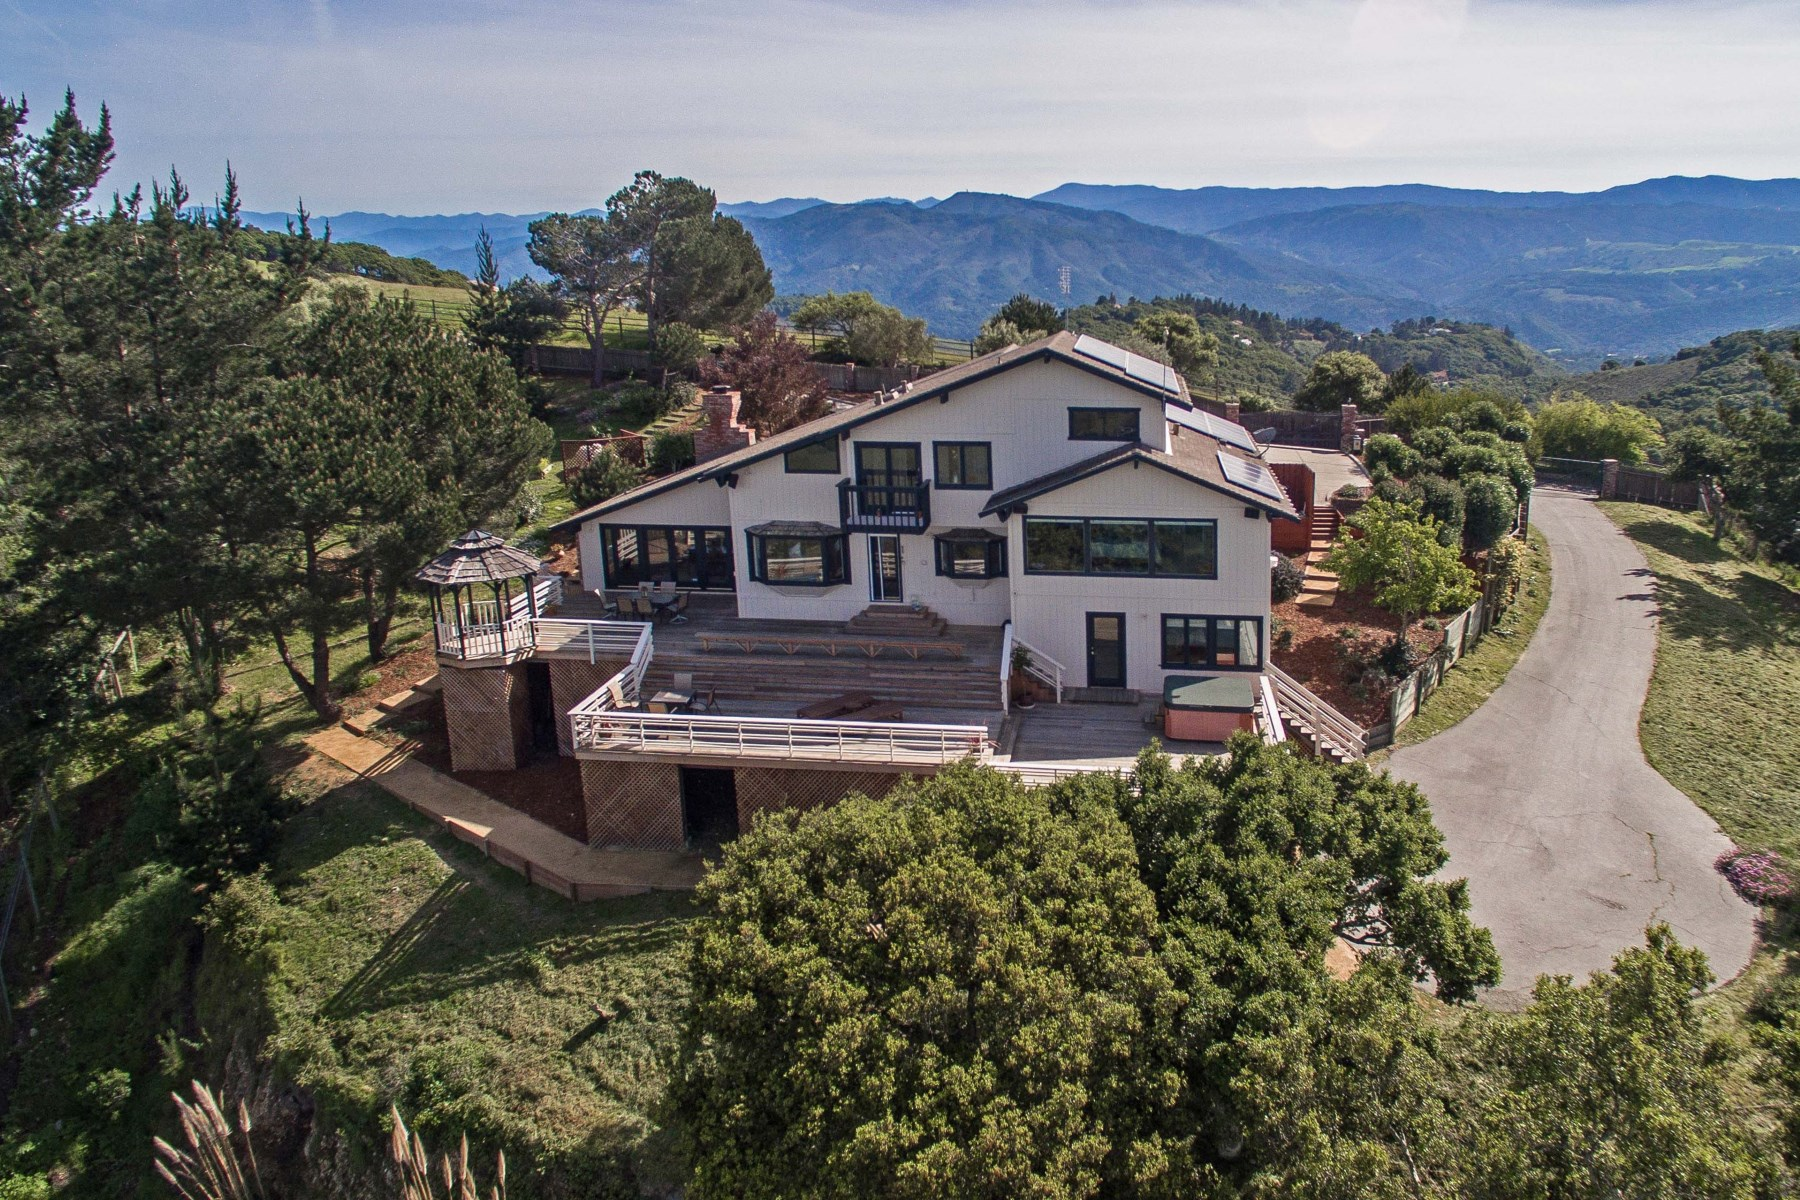 Land for Sale at Panoramic Ocean, Mountain, Valley Views 10400 Saddle Road Monterey, California, 93940 United States